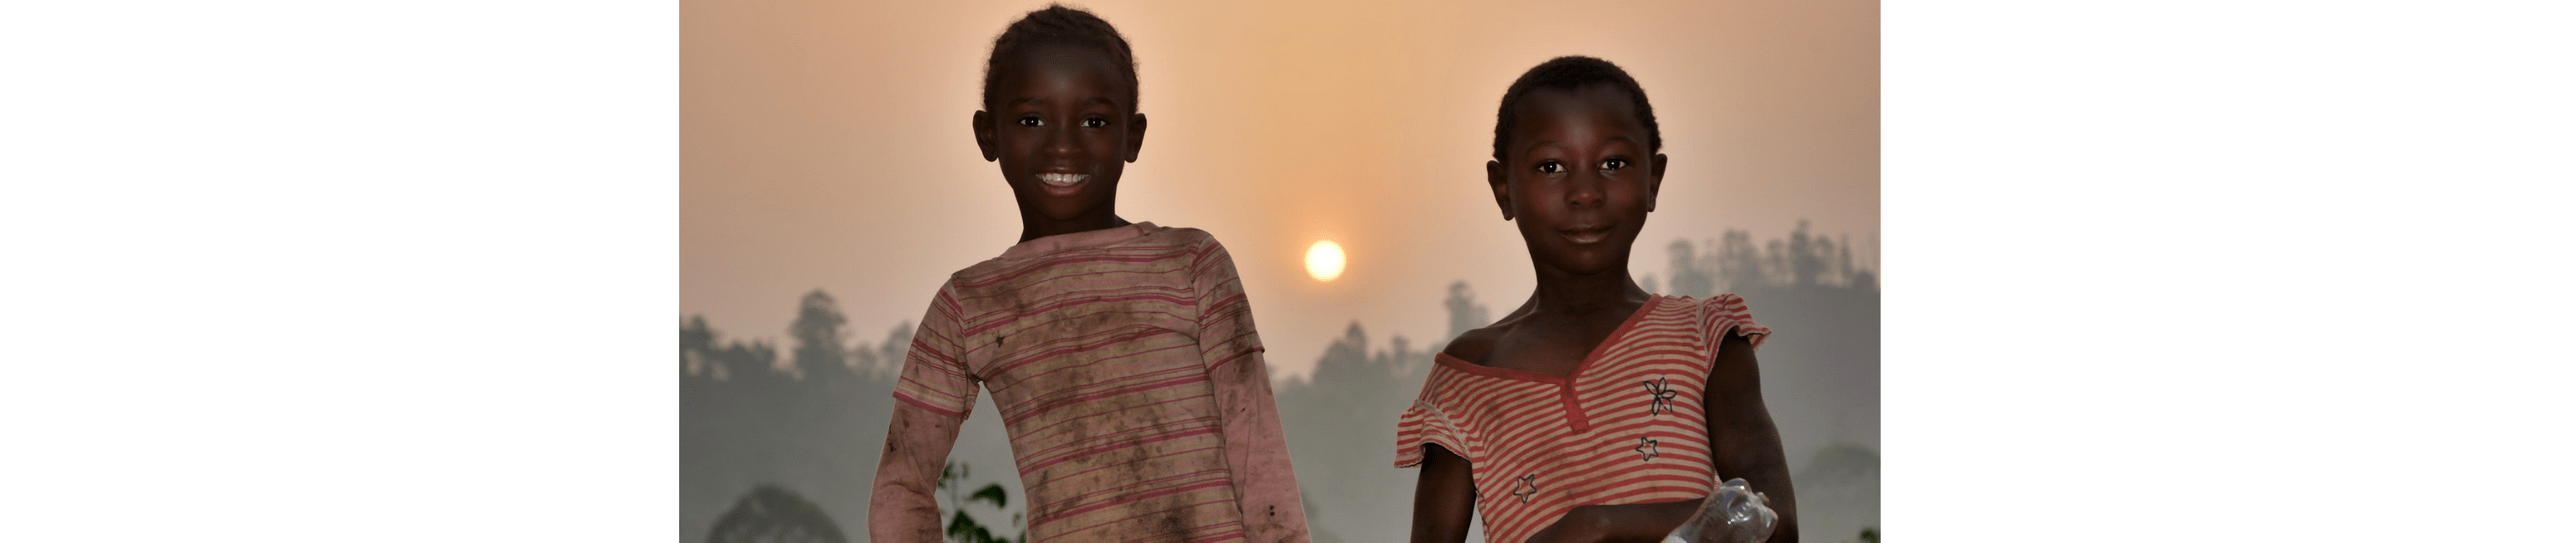 Image of two children in front of a sun on an African landscape